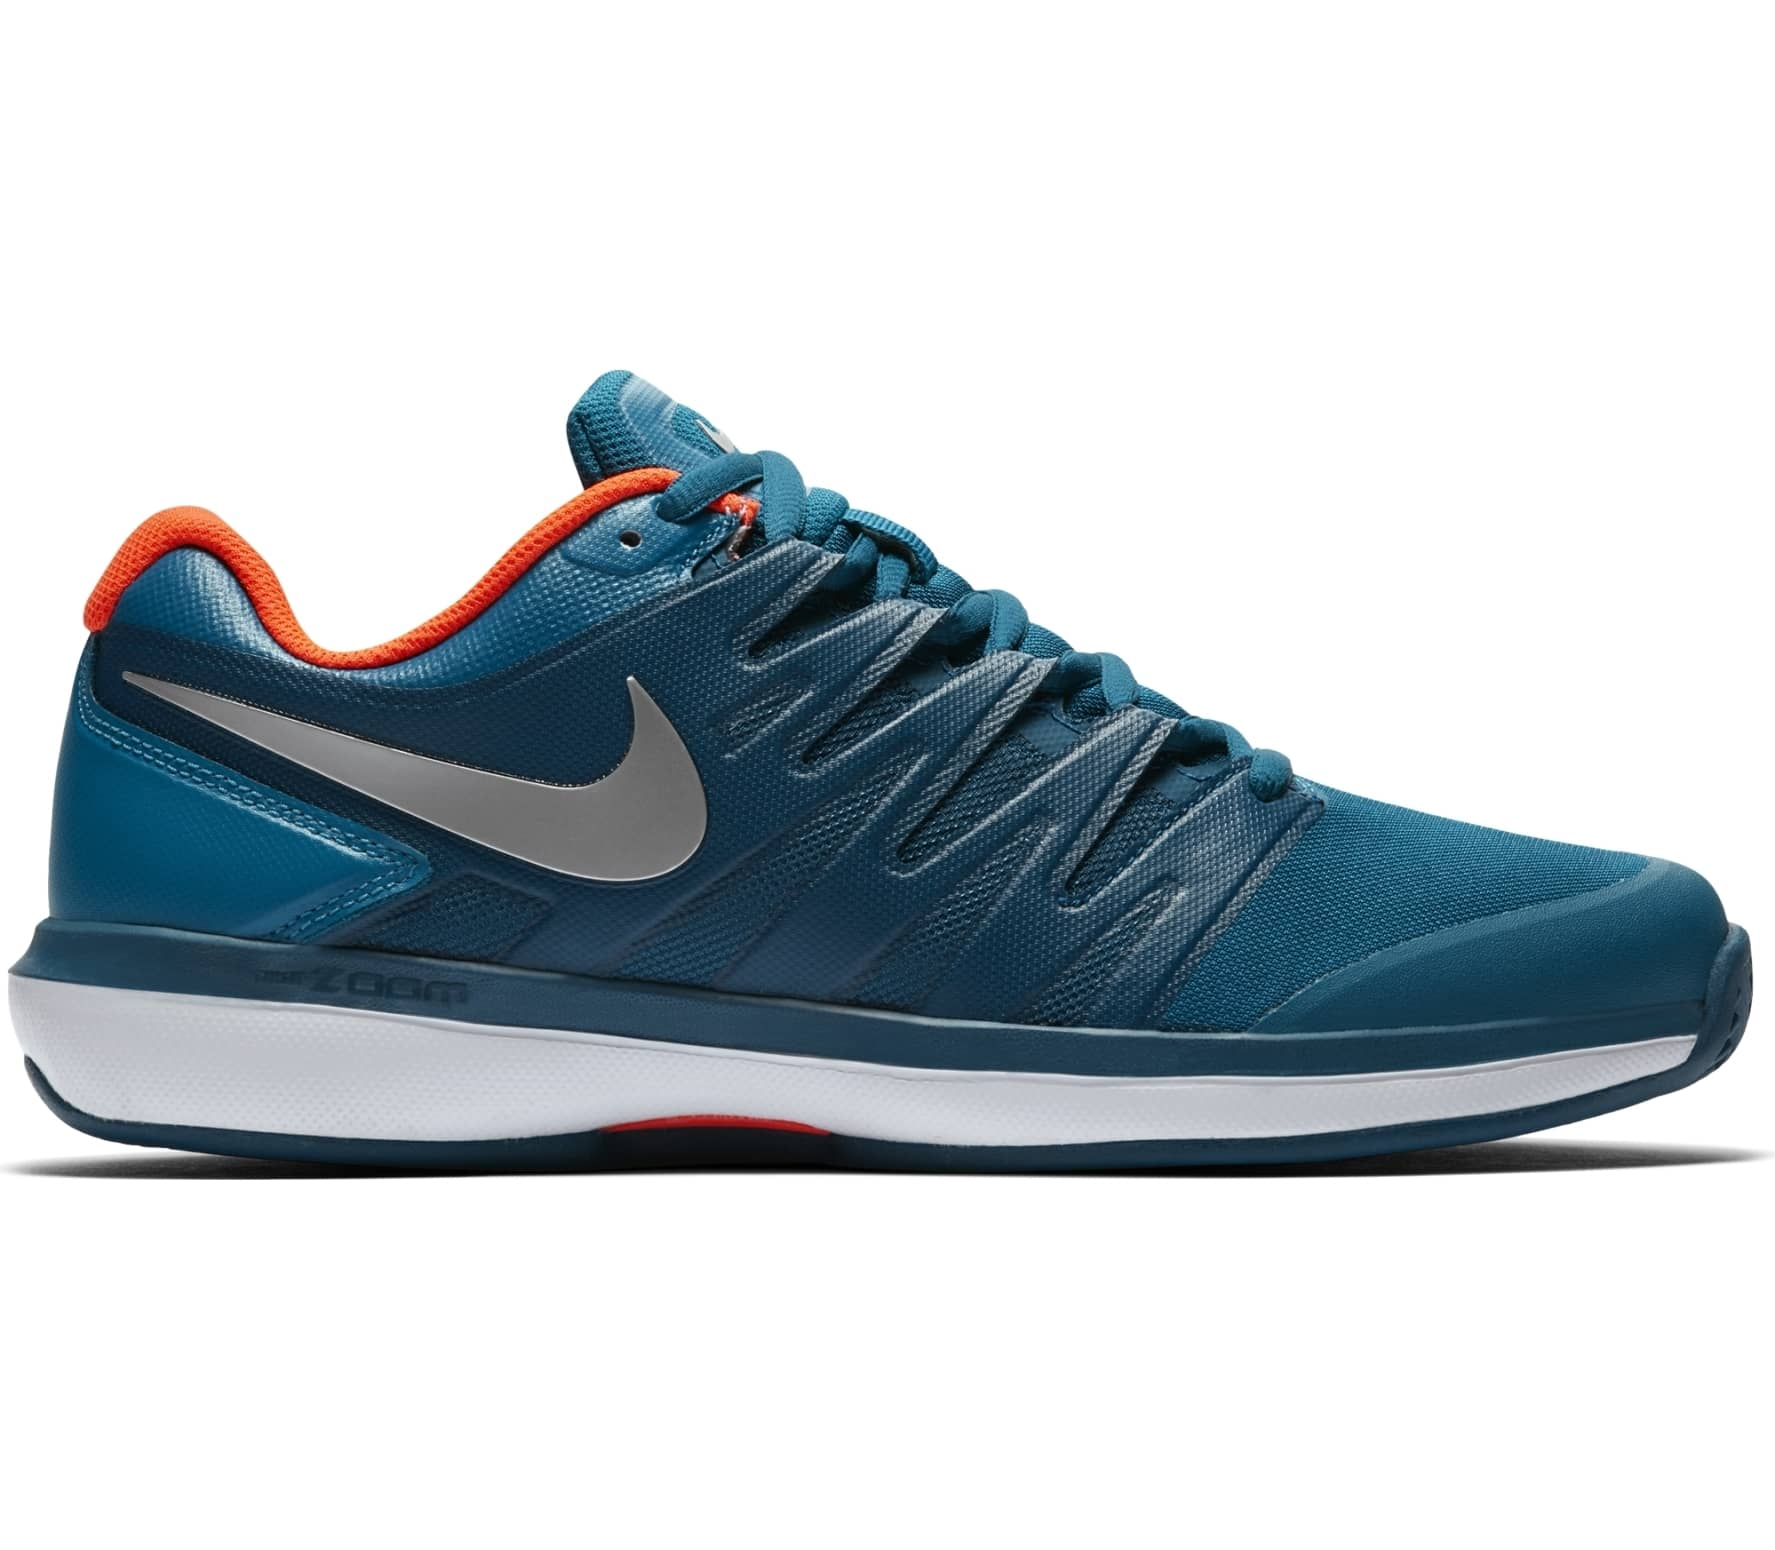 4e13bc1e2717 Nike - Air Zoom Prestige Clay men s tennis shoes (dark blue orange ...